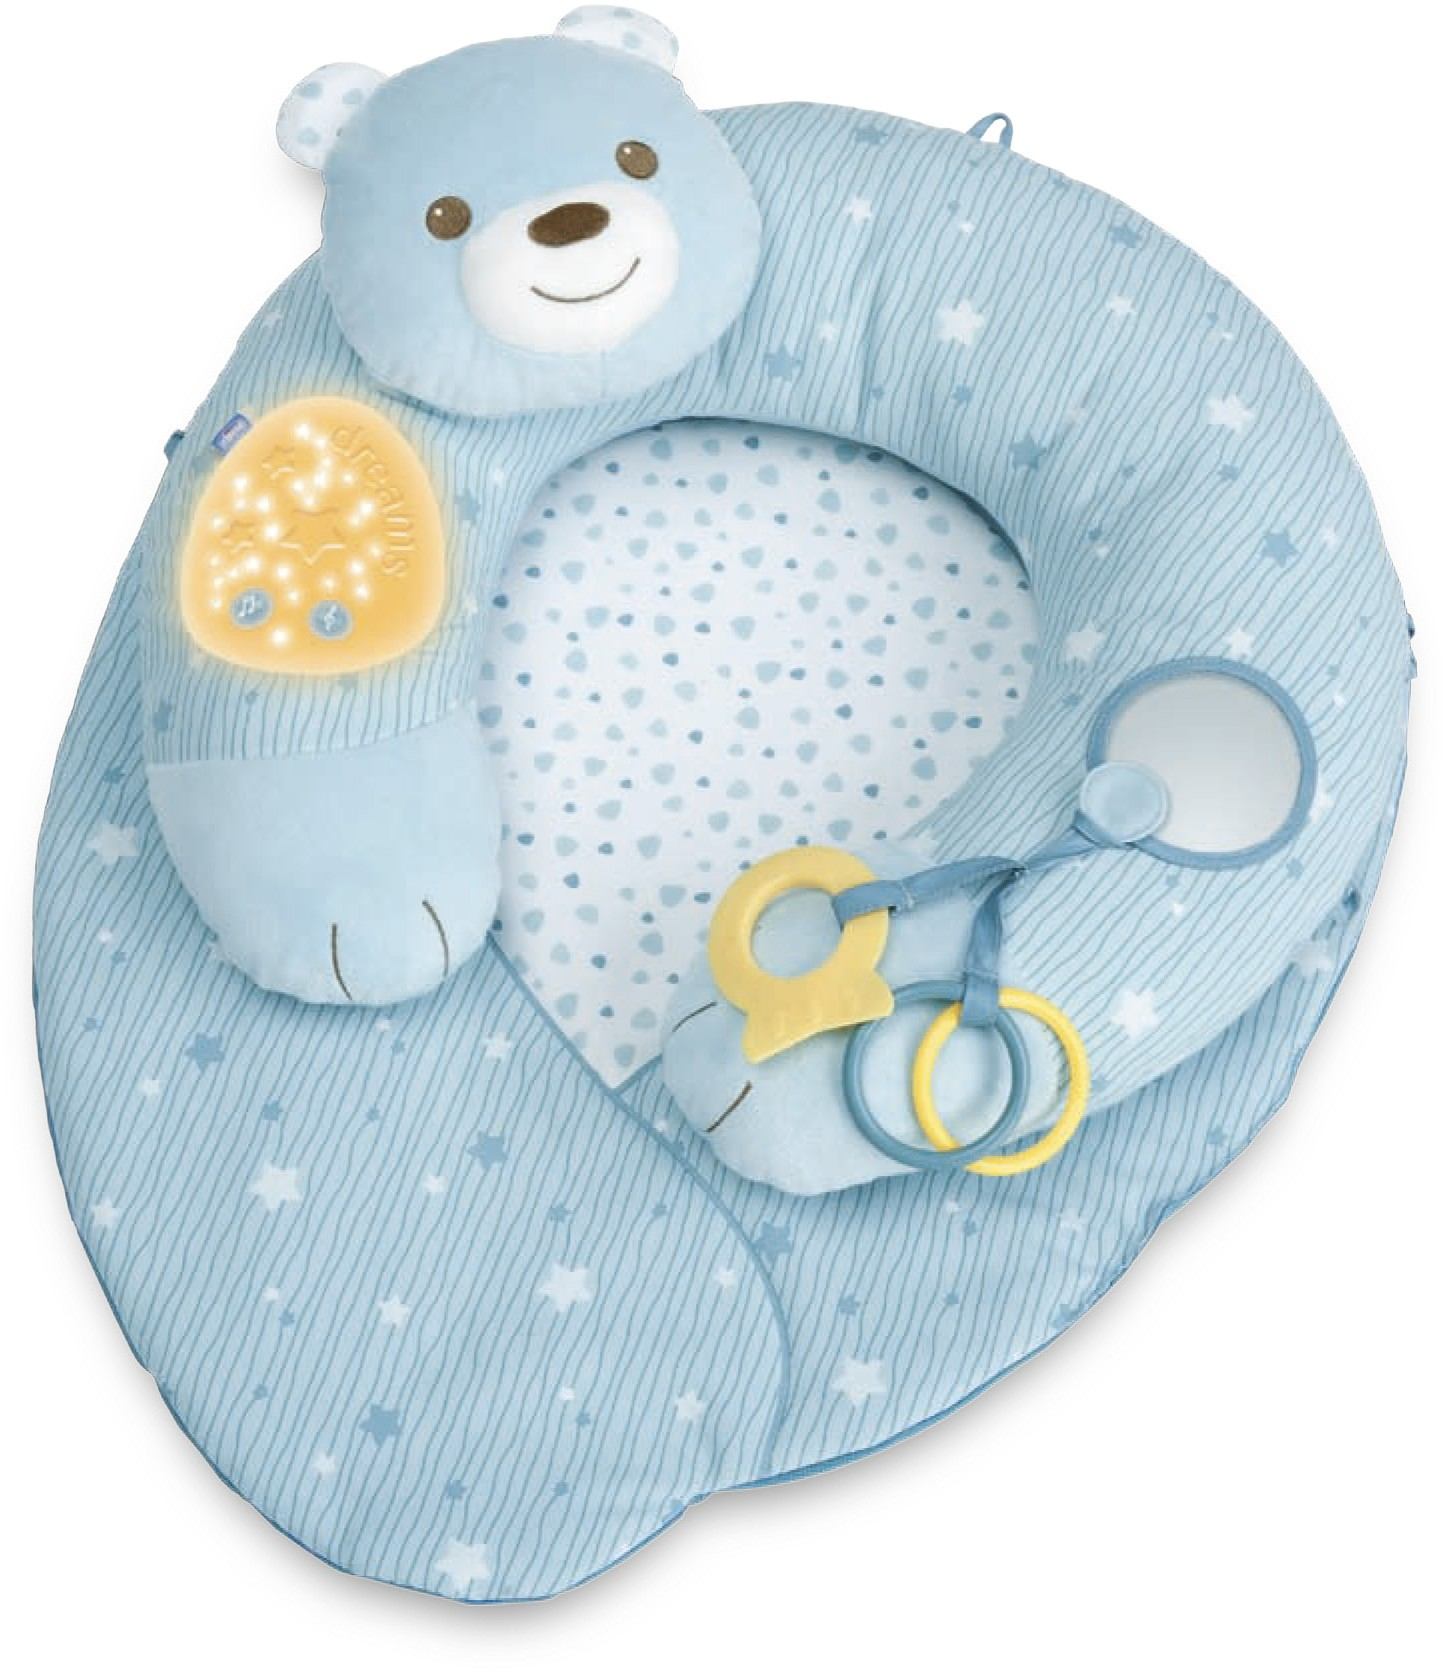 copy of Nido di Coccole - First Dreams Chicco